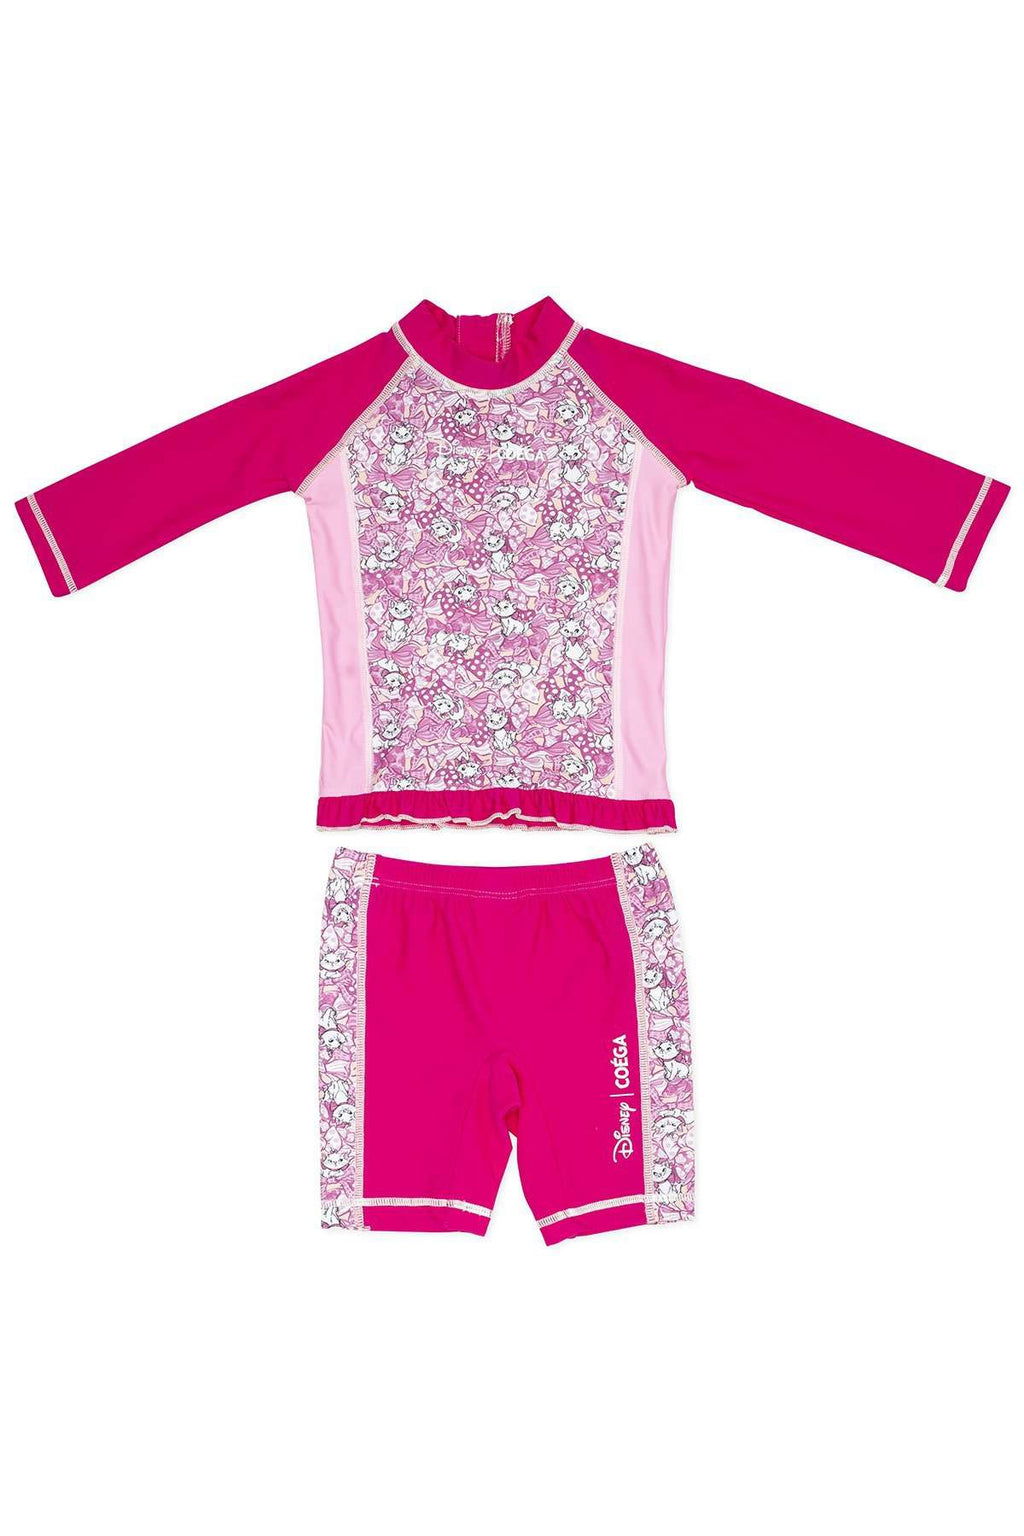 Coega Disney Girls Baby Swim Suit - Two Piece Pink Marie / 12M Sun Protective Swimwear